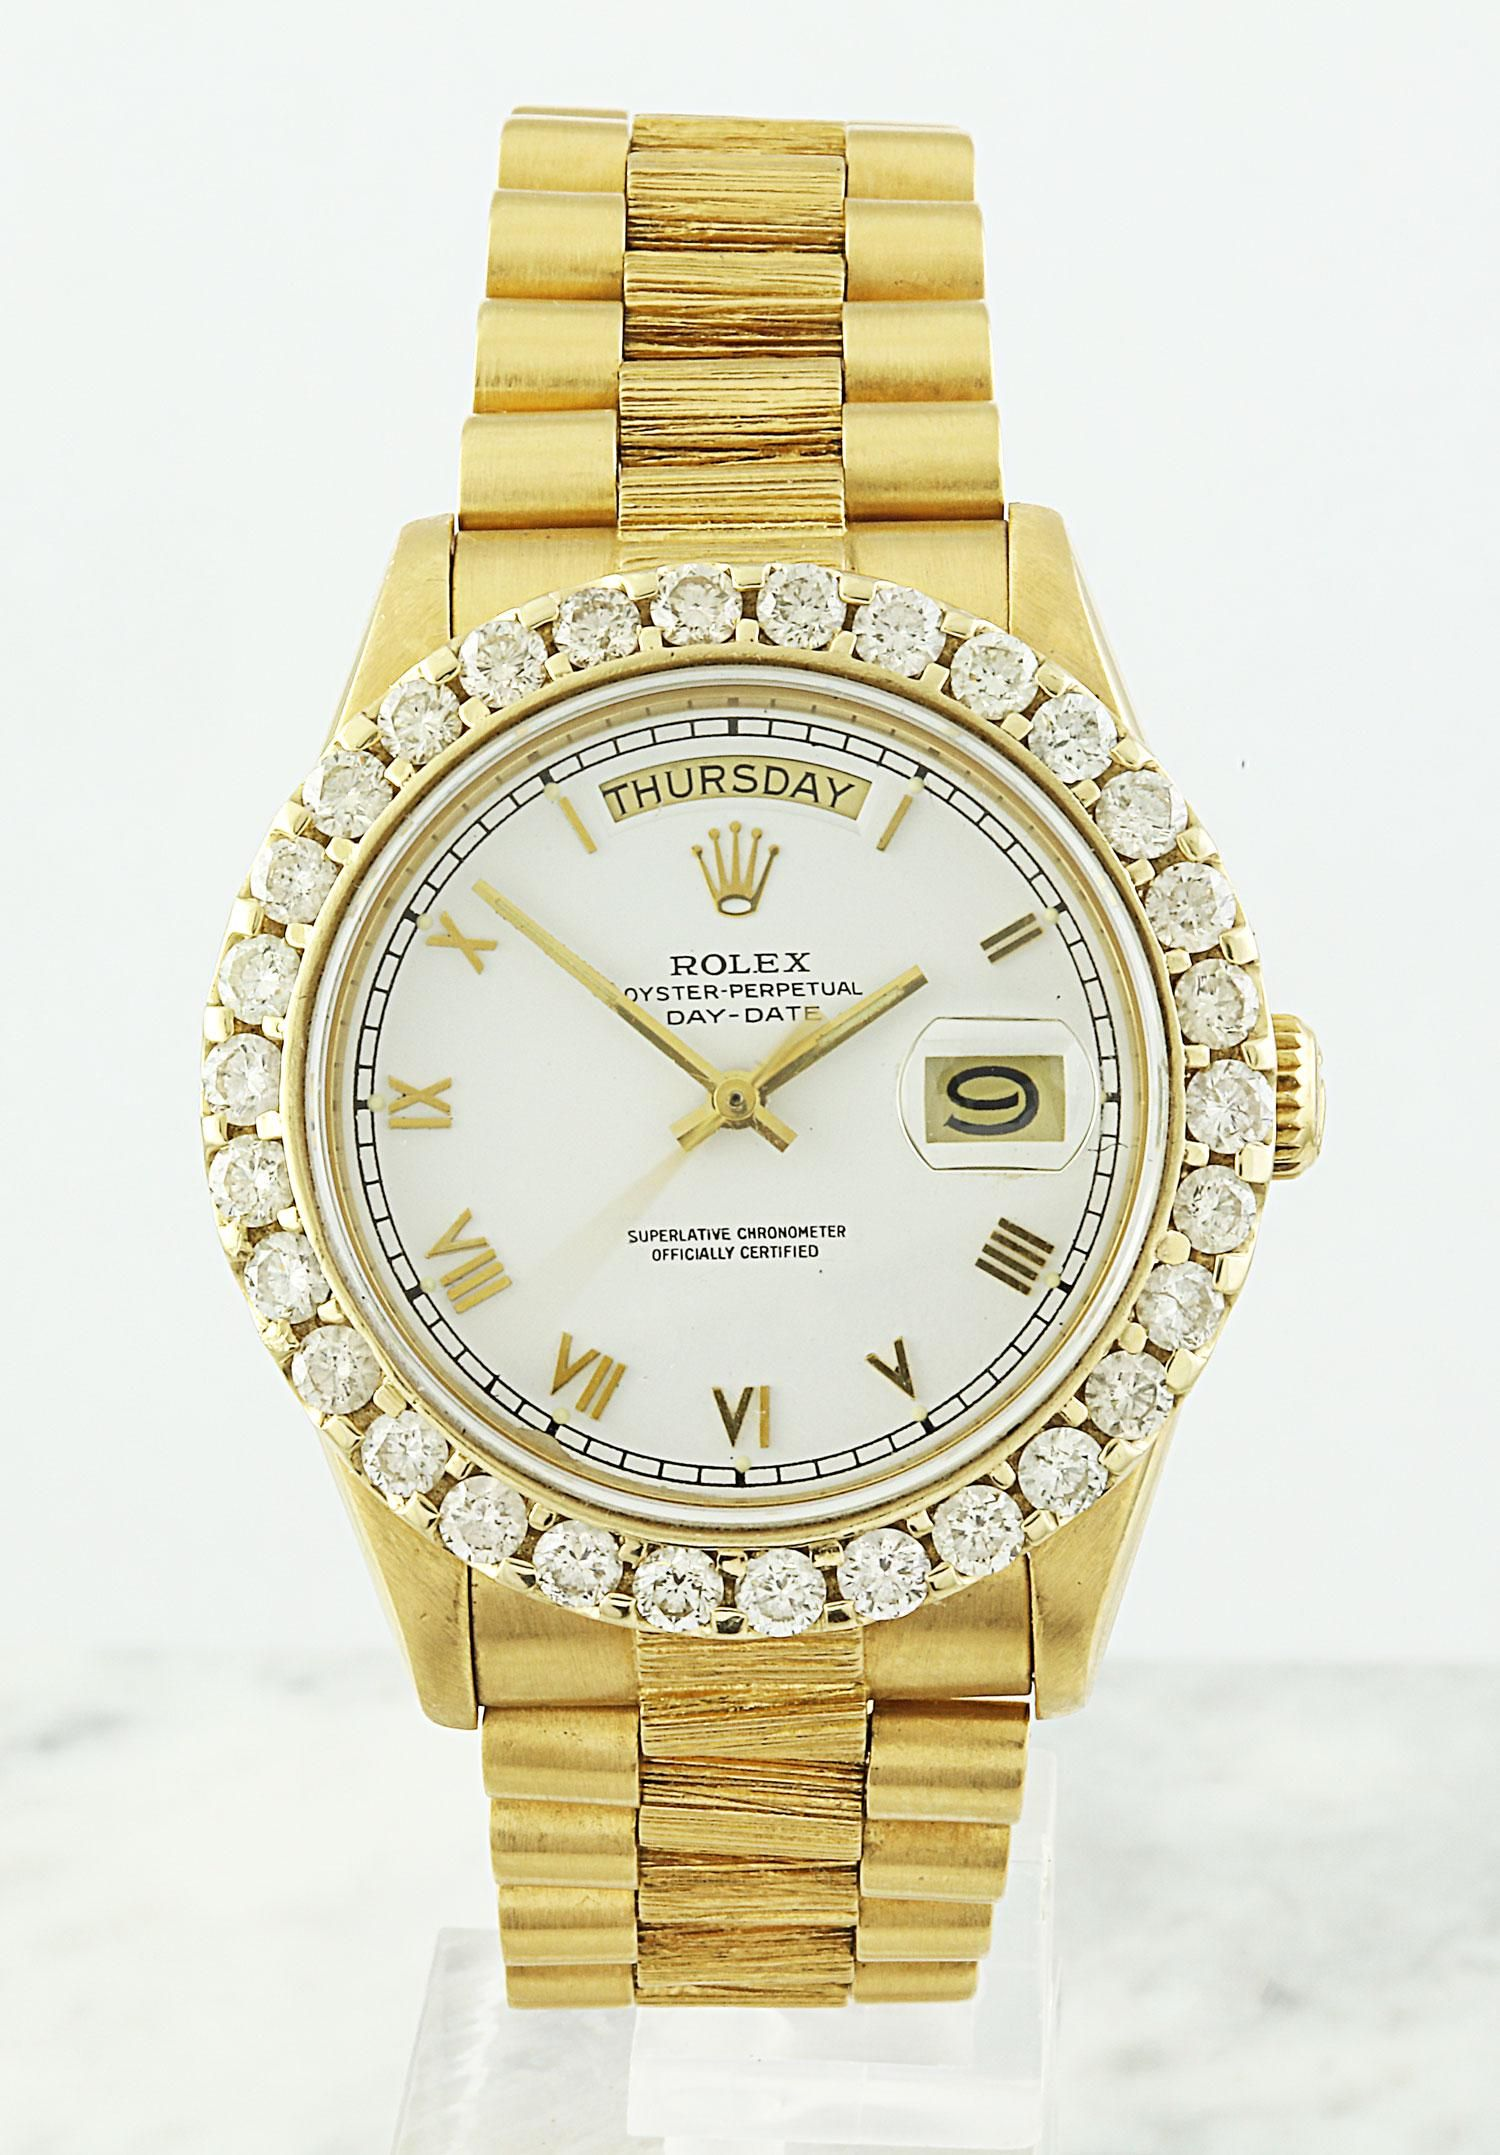 Authentic Pre-owned Rolex Perpetual Day-Date 18K Yellow